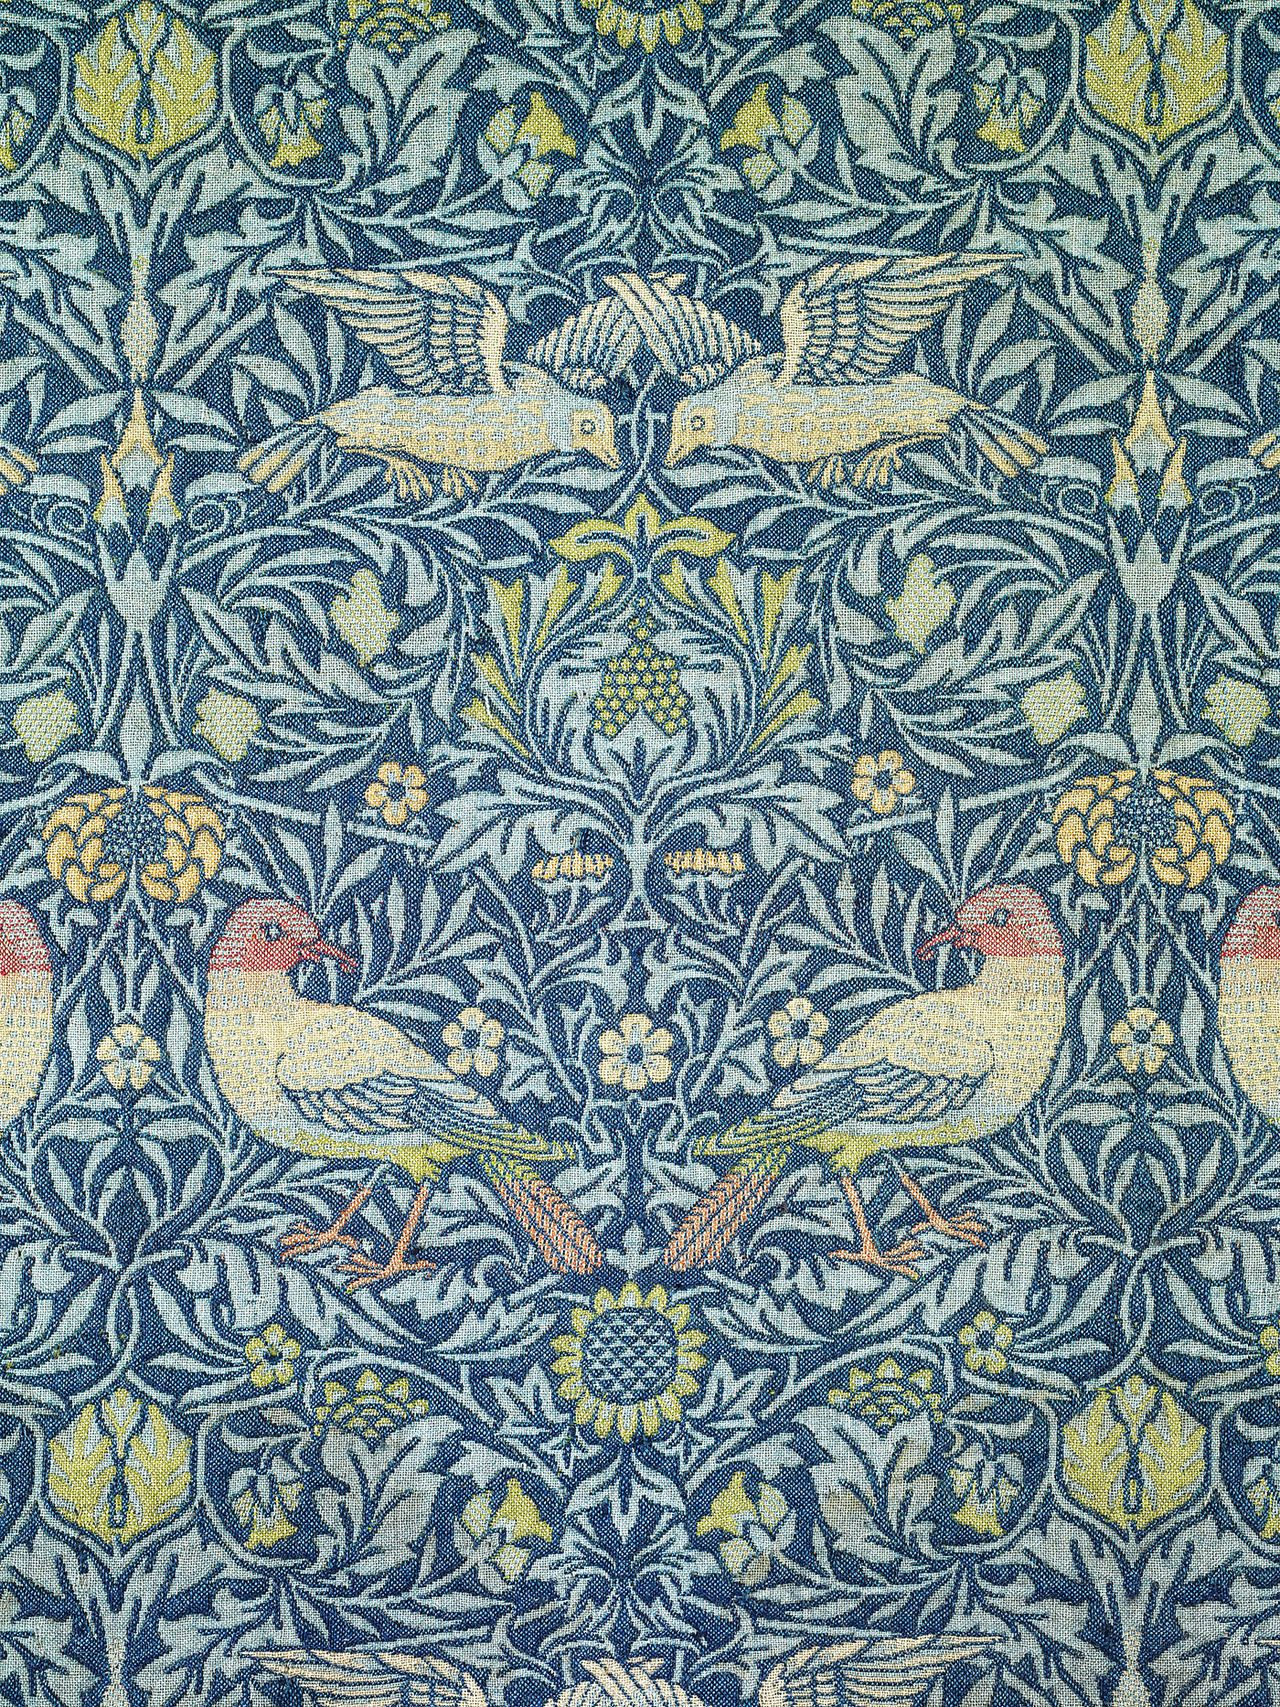 William Morris, Bird, 1878 From the Metropolitan Museum of